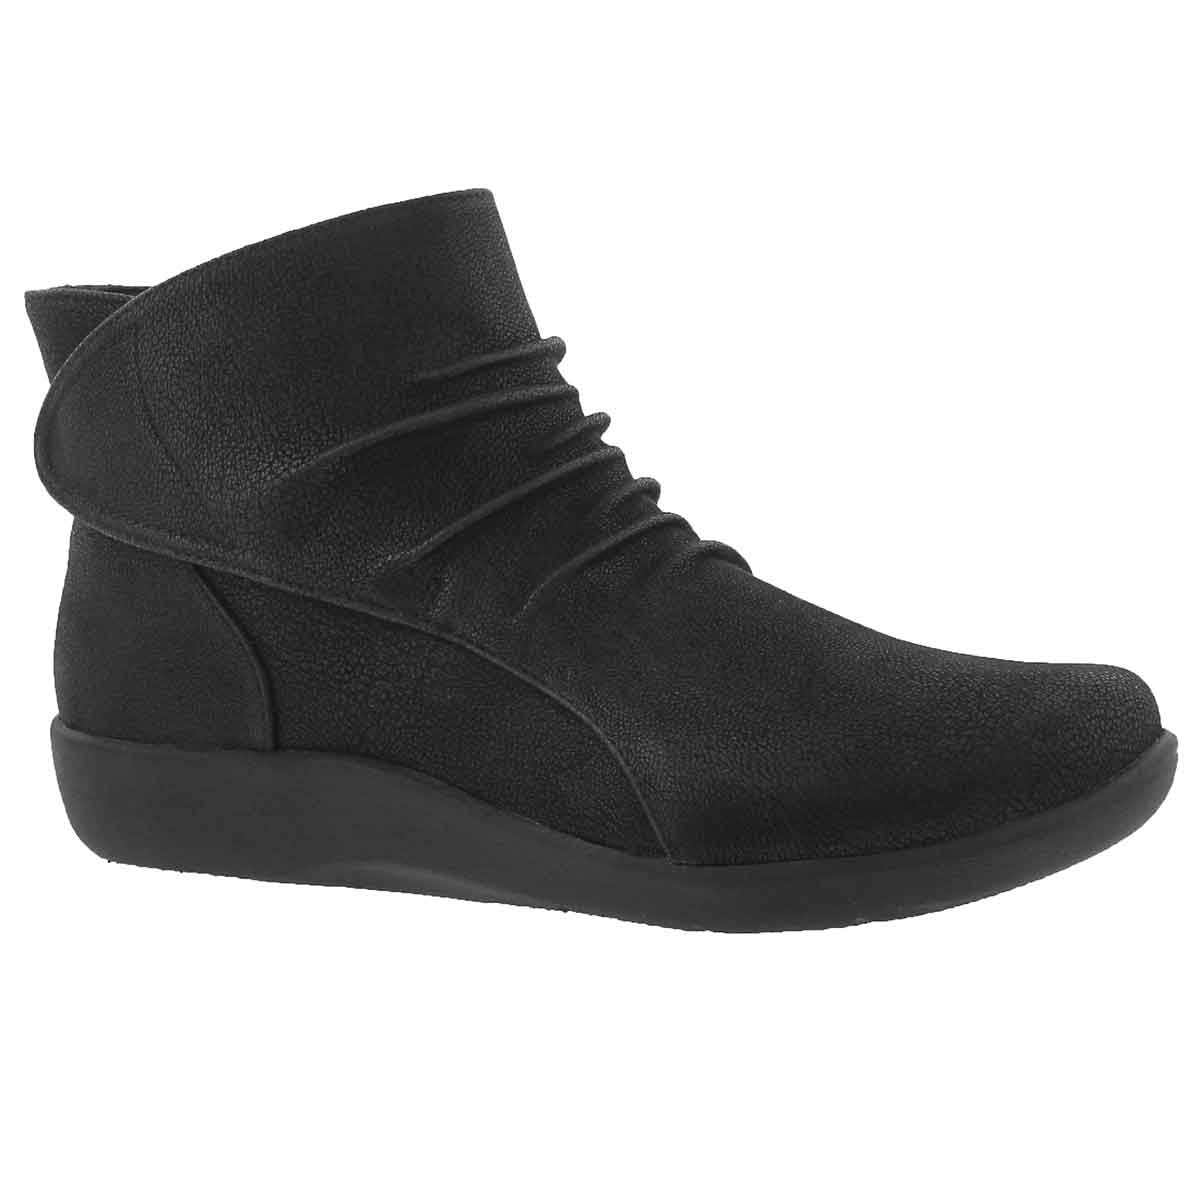 Lds Sillian Sway black slip on boot